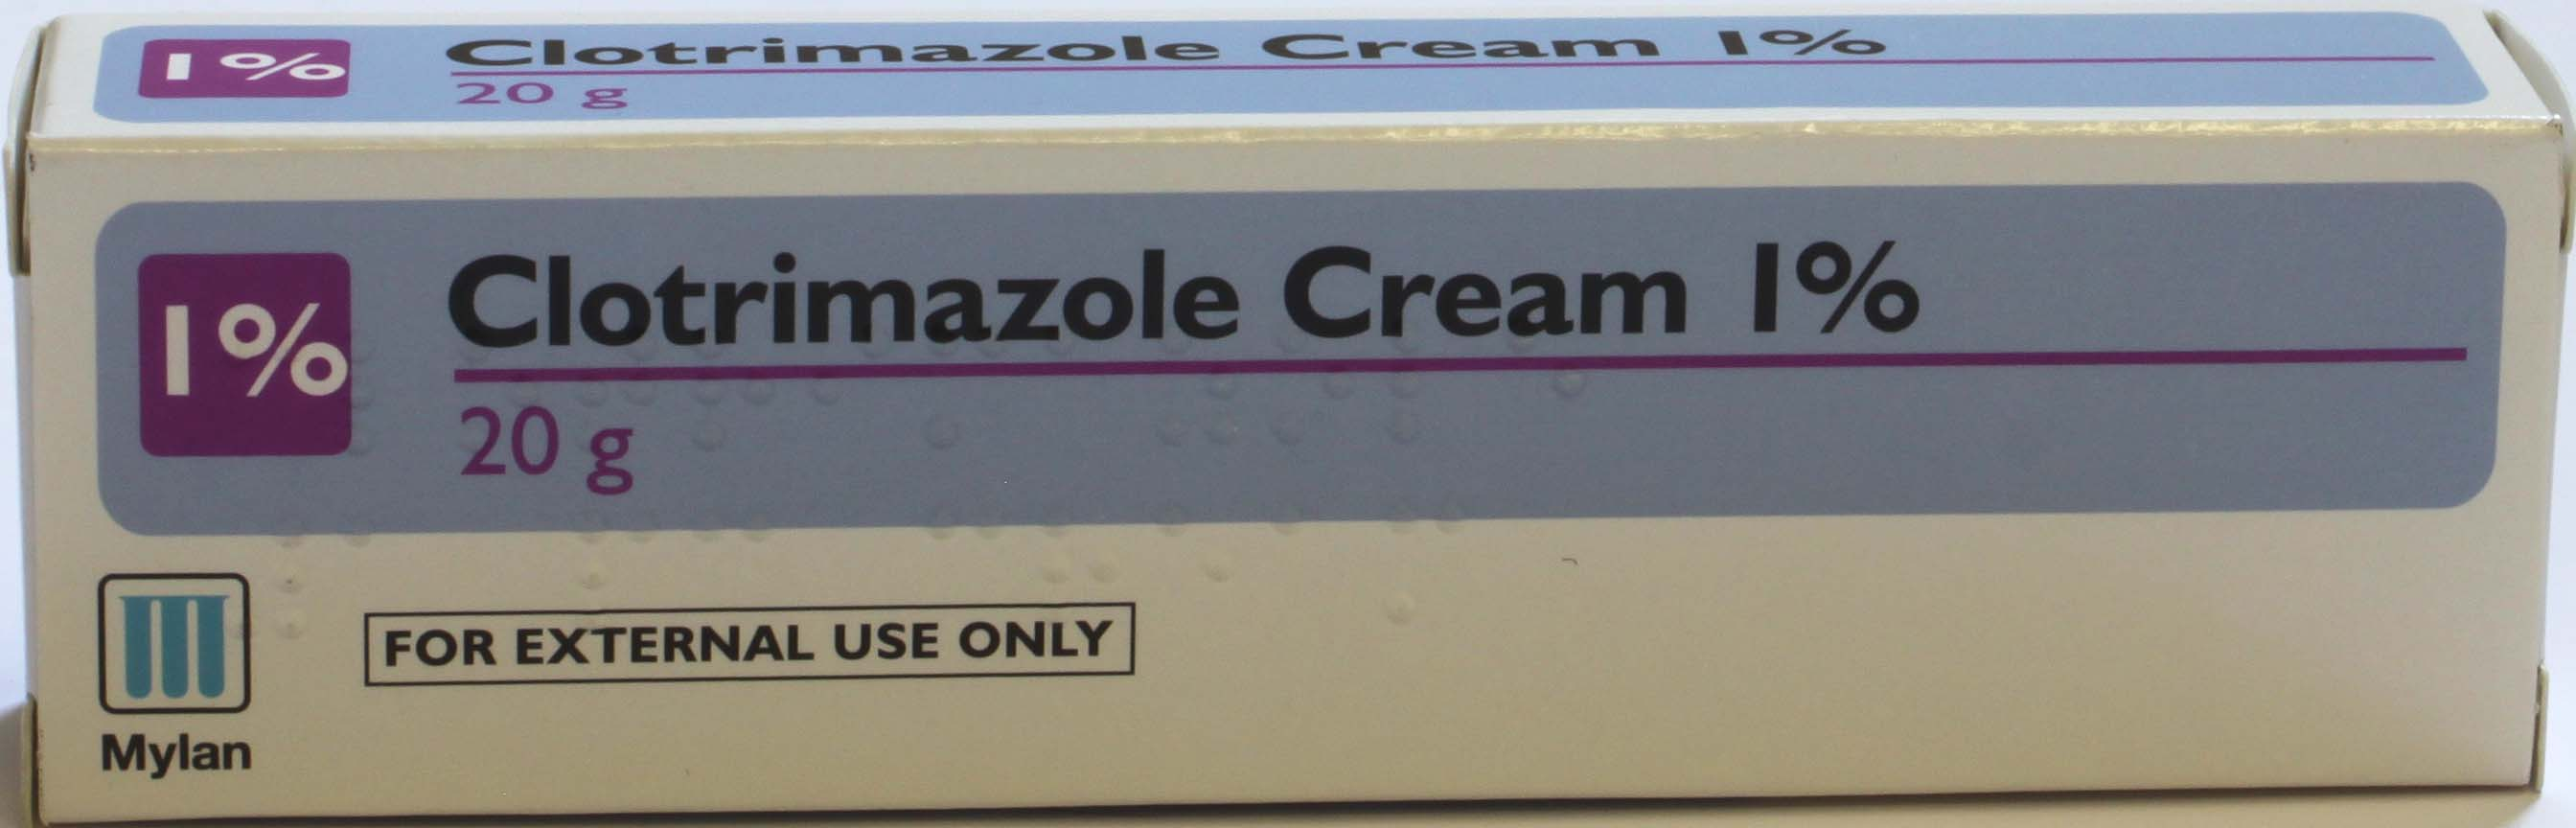 Clotrimazole Cream 1% - 20g (Mylan)